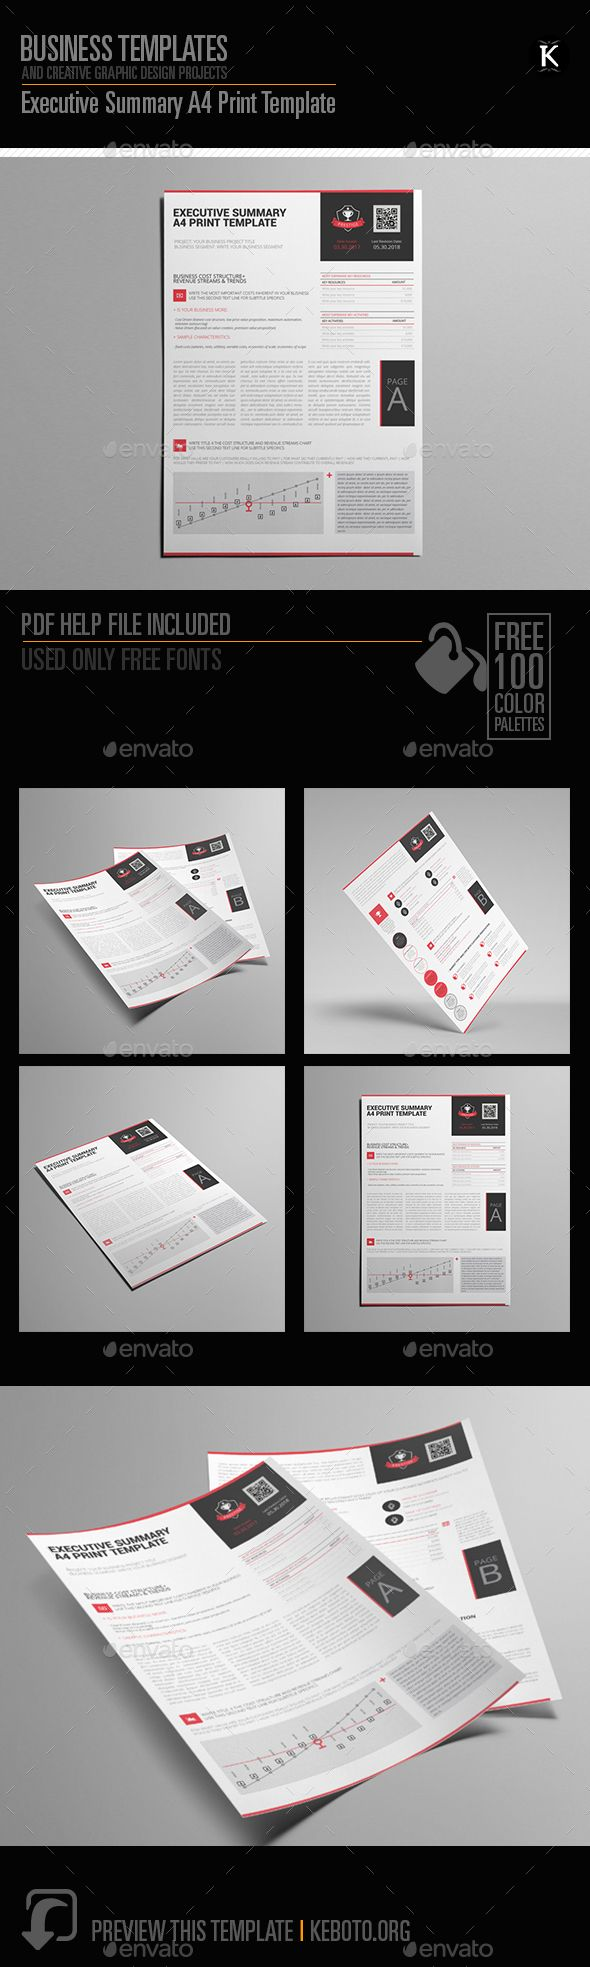 Preview this itemhereExecutive Summary A4 Print TemplateSpecifications: Format: A4 PortraitColor Model: CMYKSoftware: Adobe InDesi